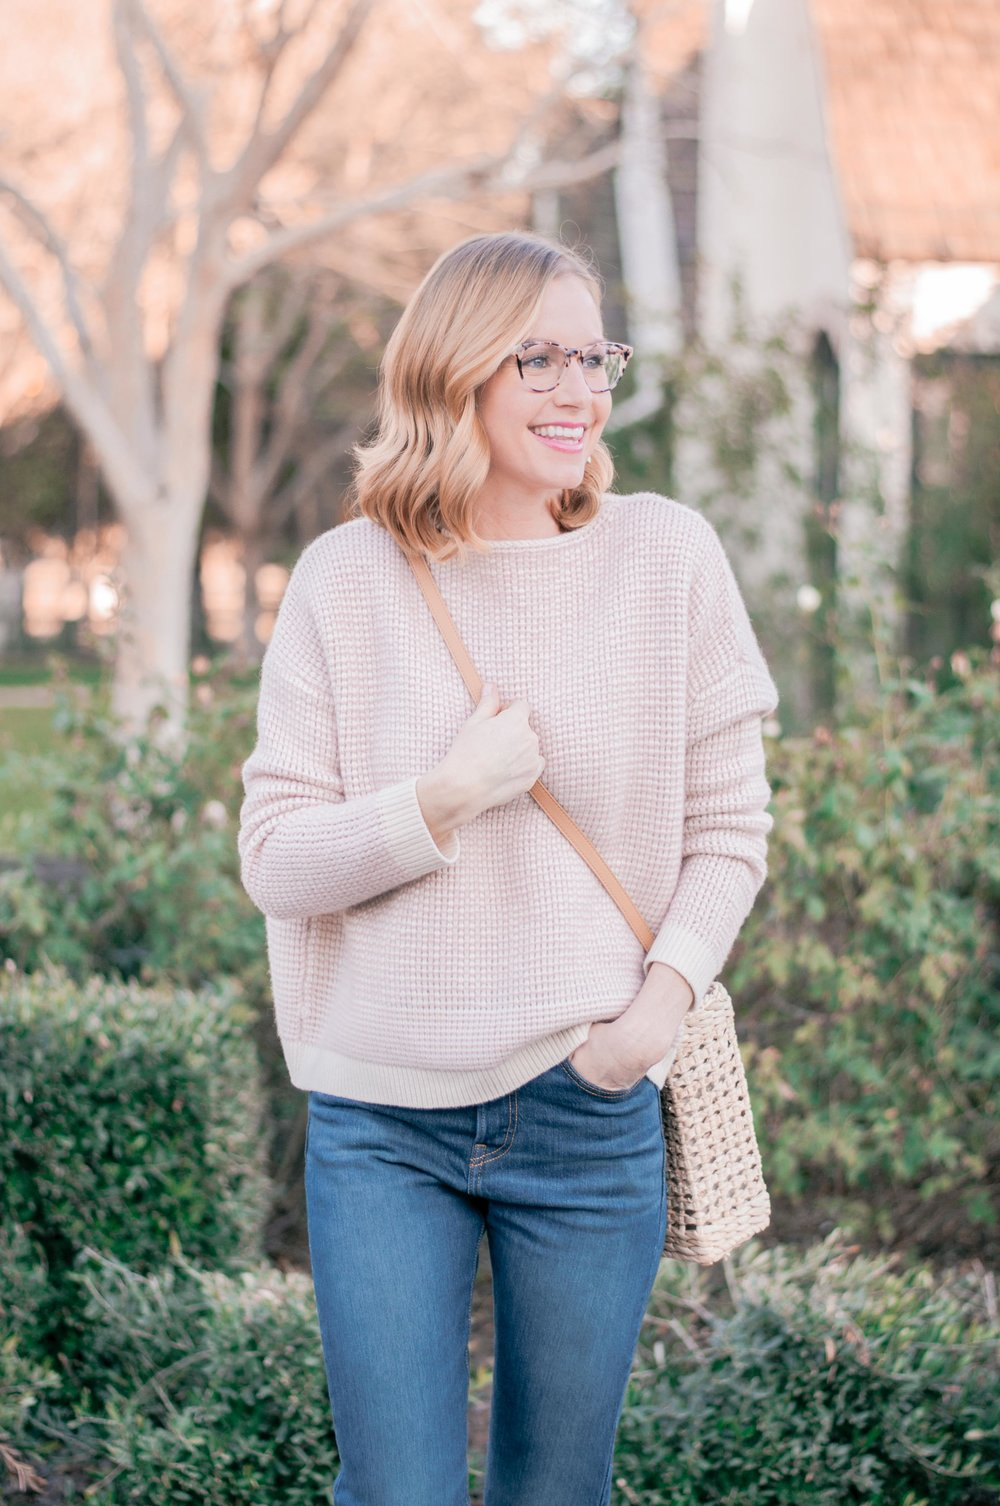 e4643cde1fda Spring Outfit Ideas for When Winter Just Won t Quit - Love and Specs